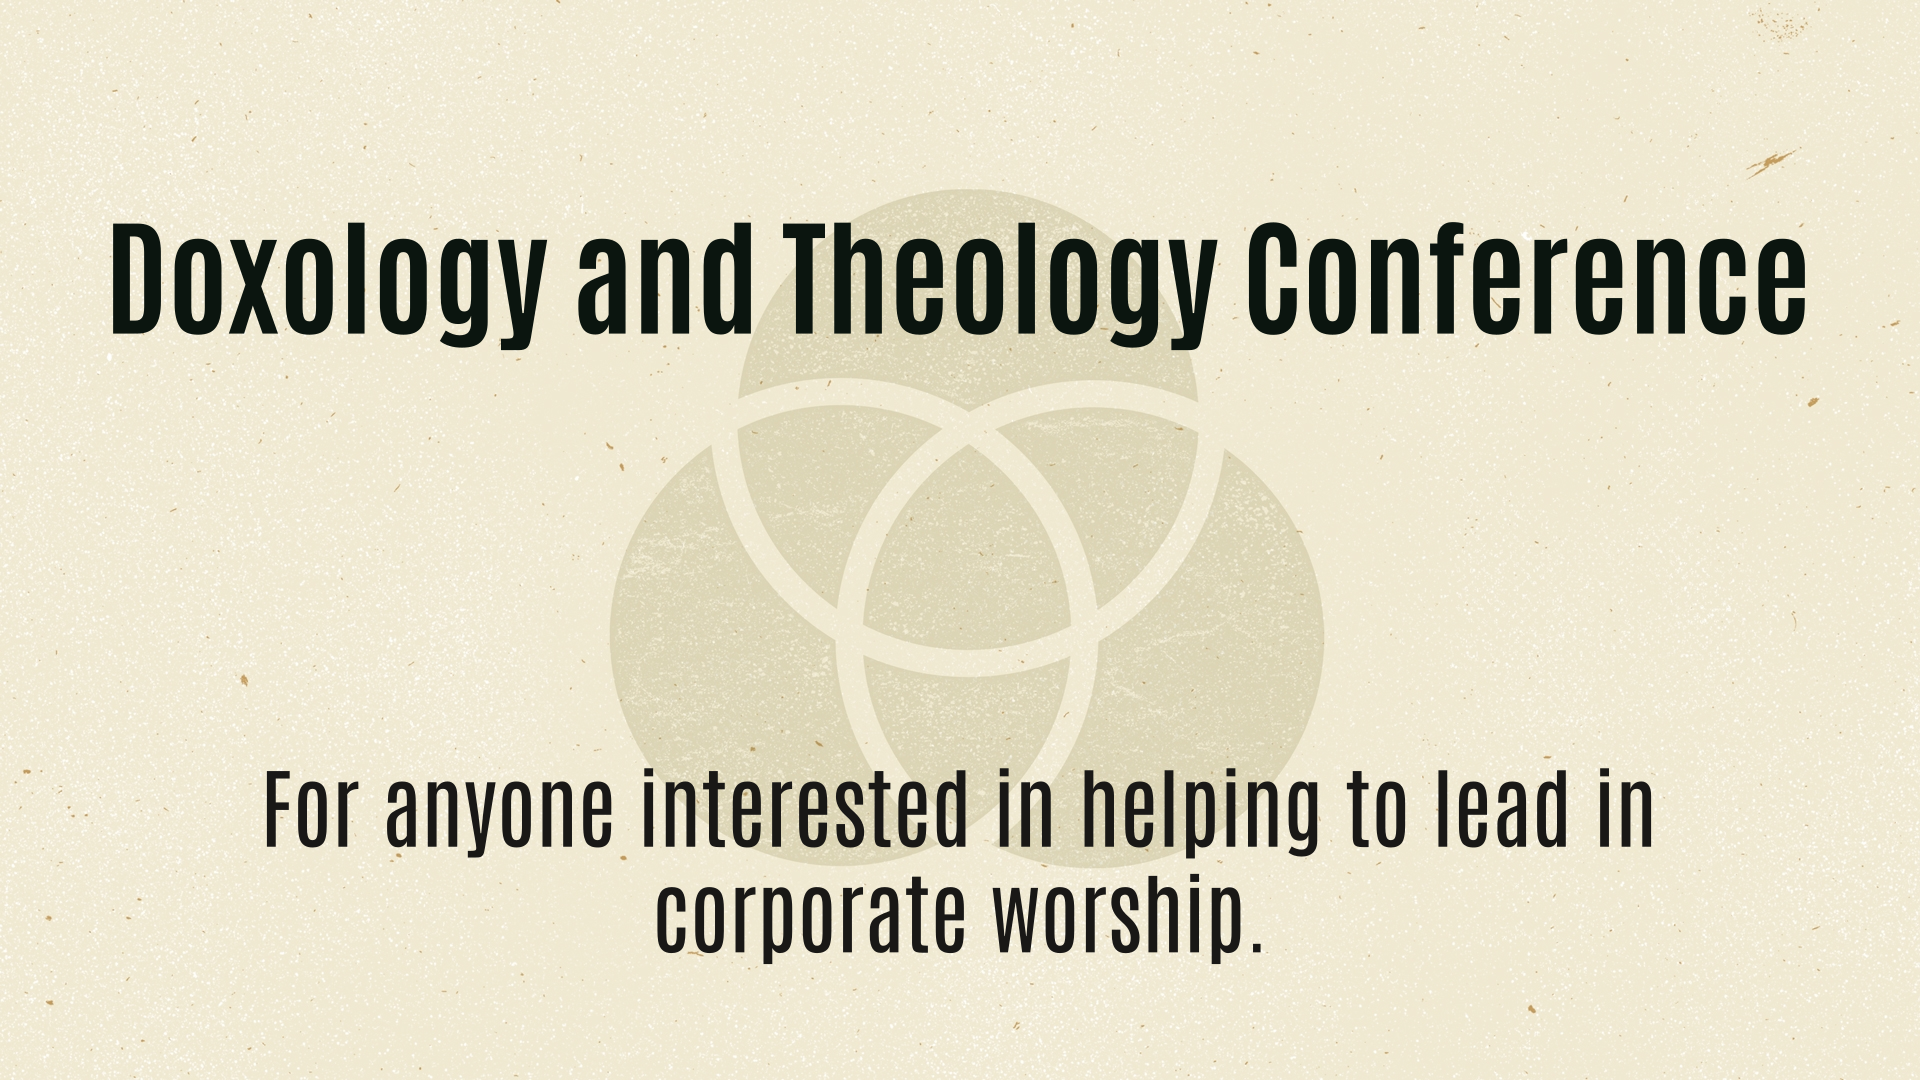 Doxology and Theology Conference